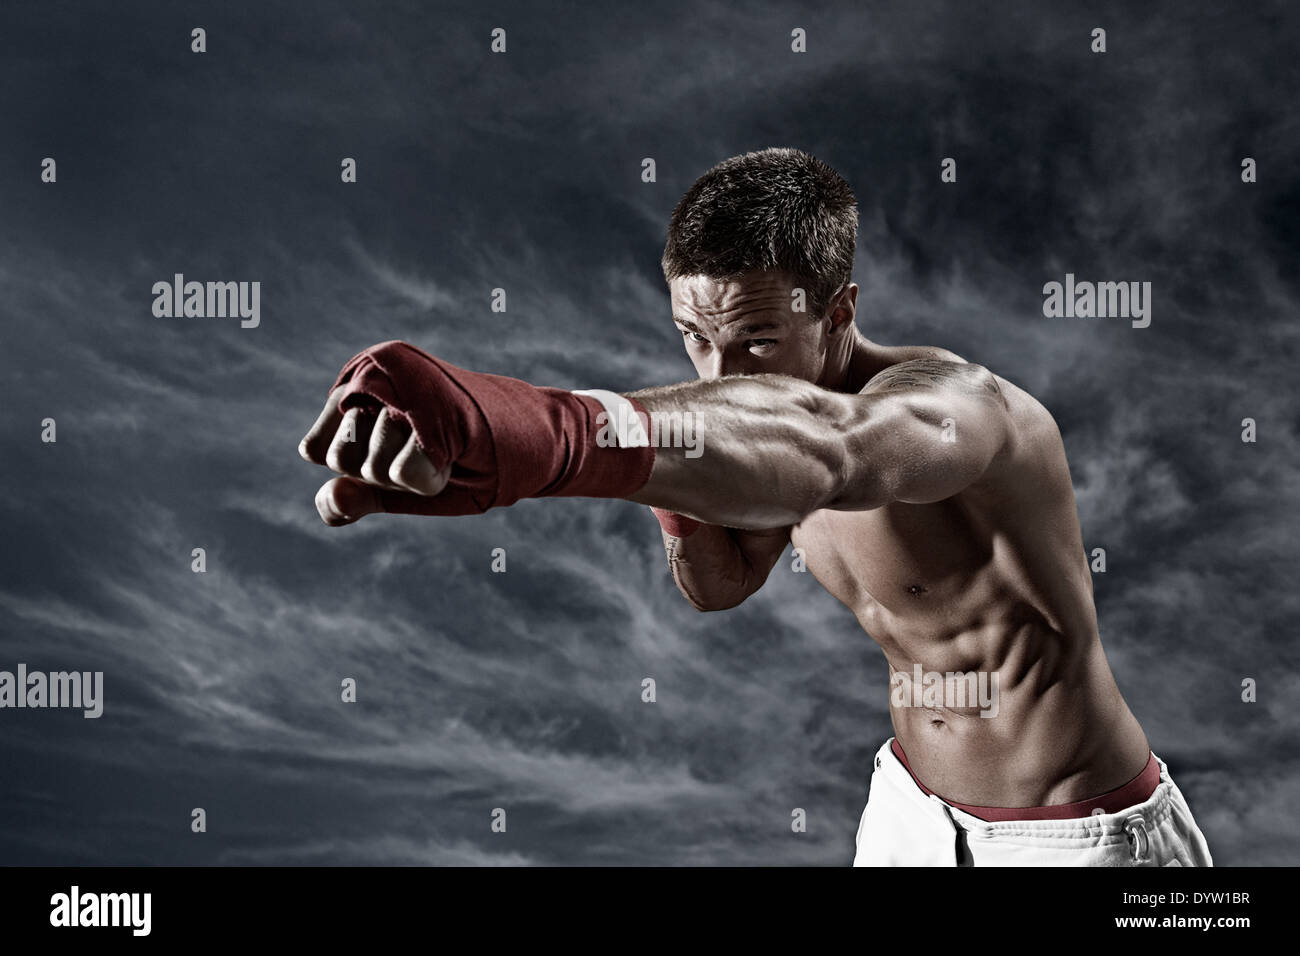 Martial artist throwing a punch backgrounded by stormy sky Stock Photo